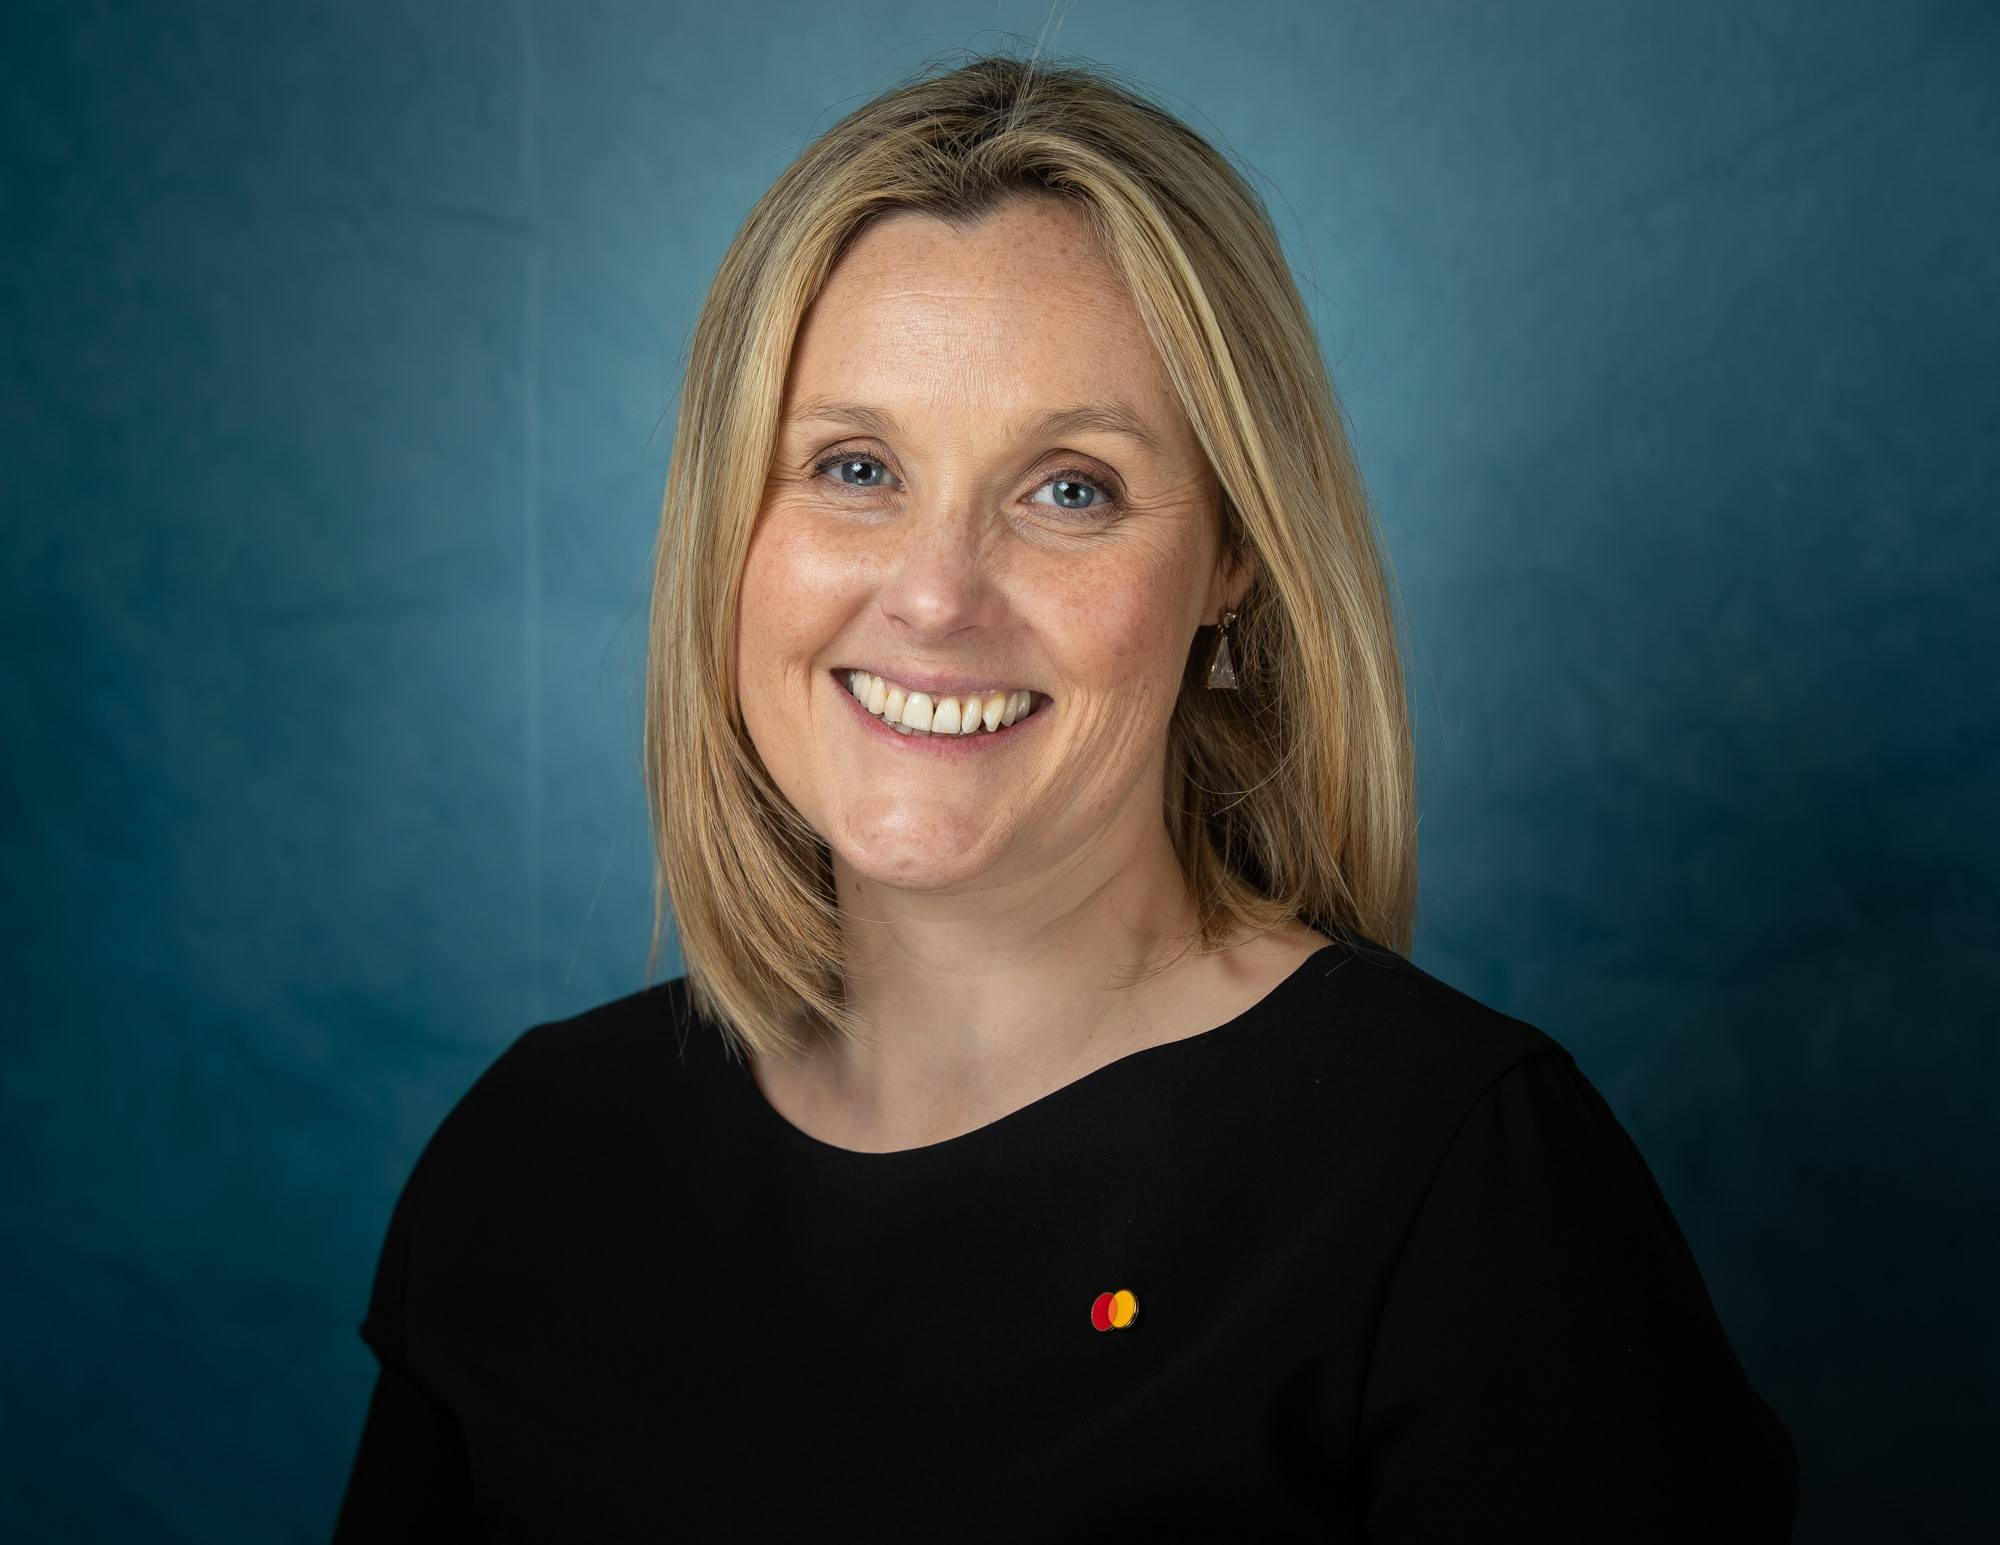 Sarah Cunningham of Mastercard is smiling into the camera against a dark blue background.